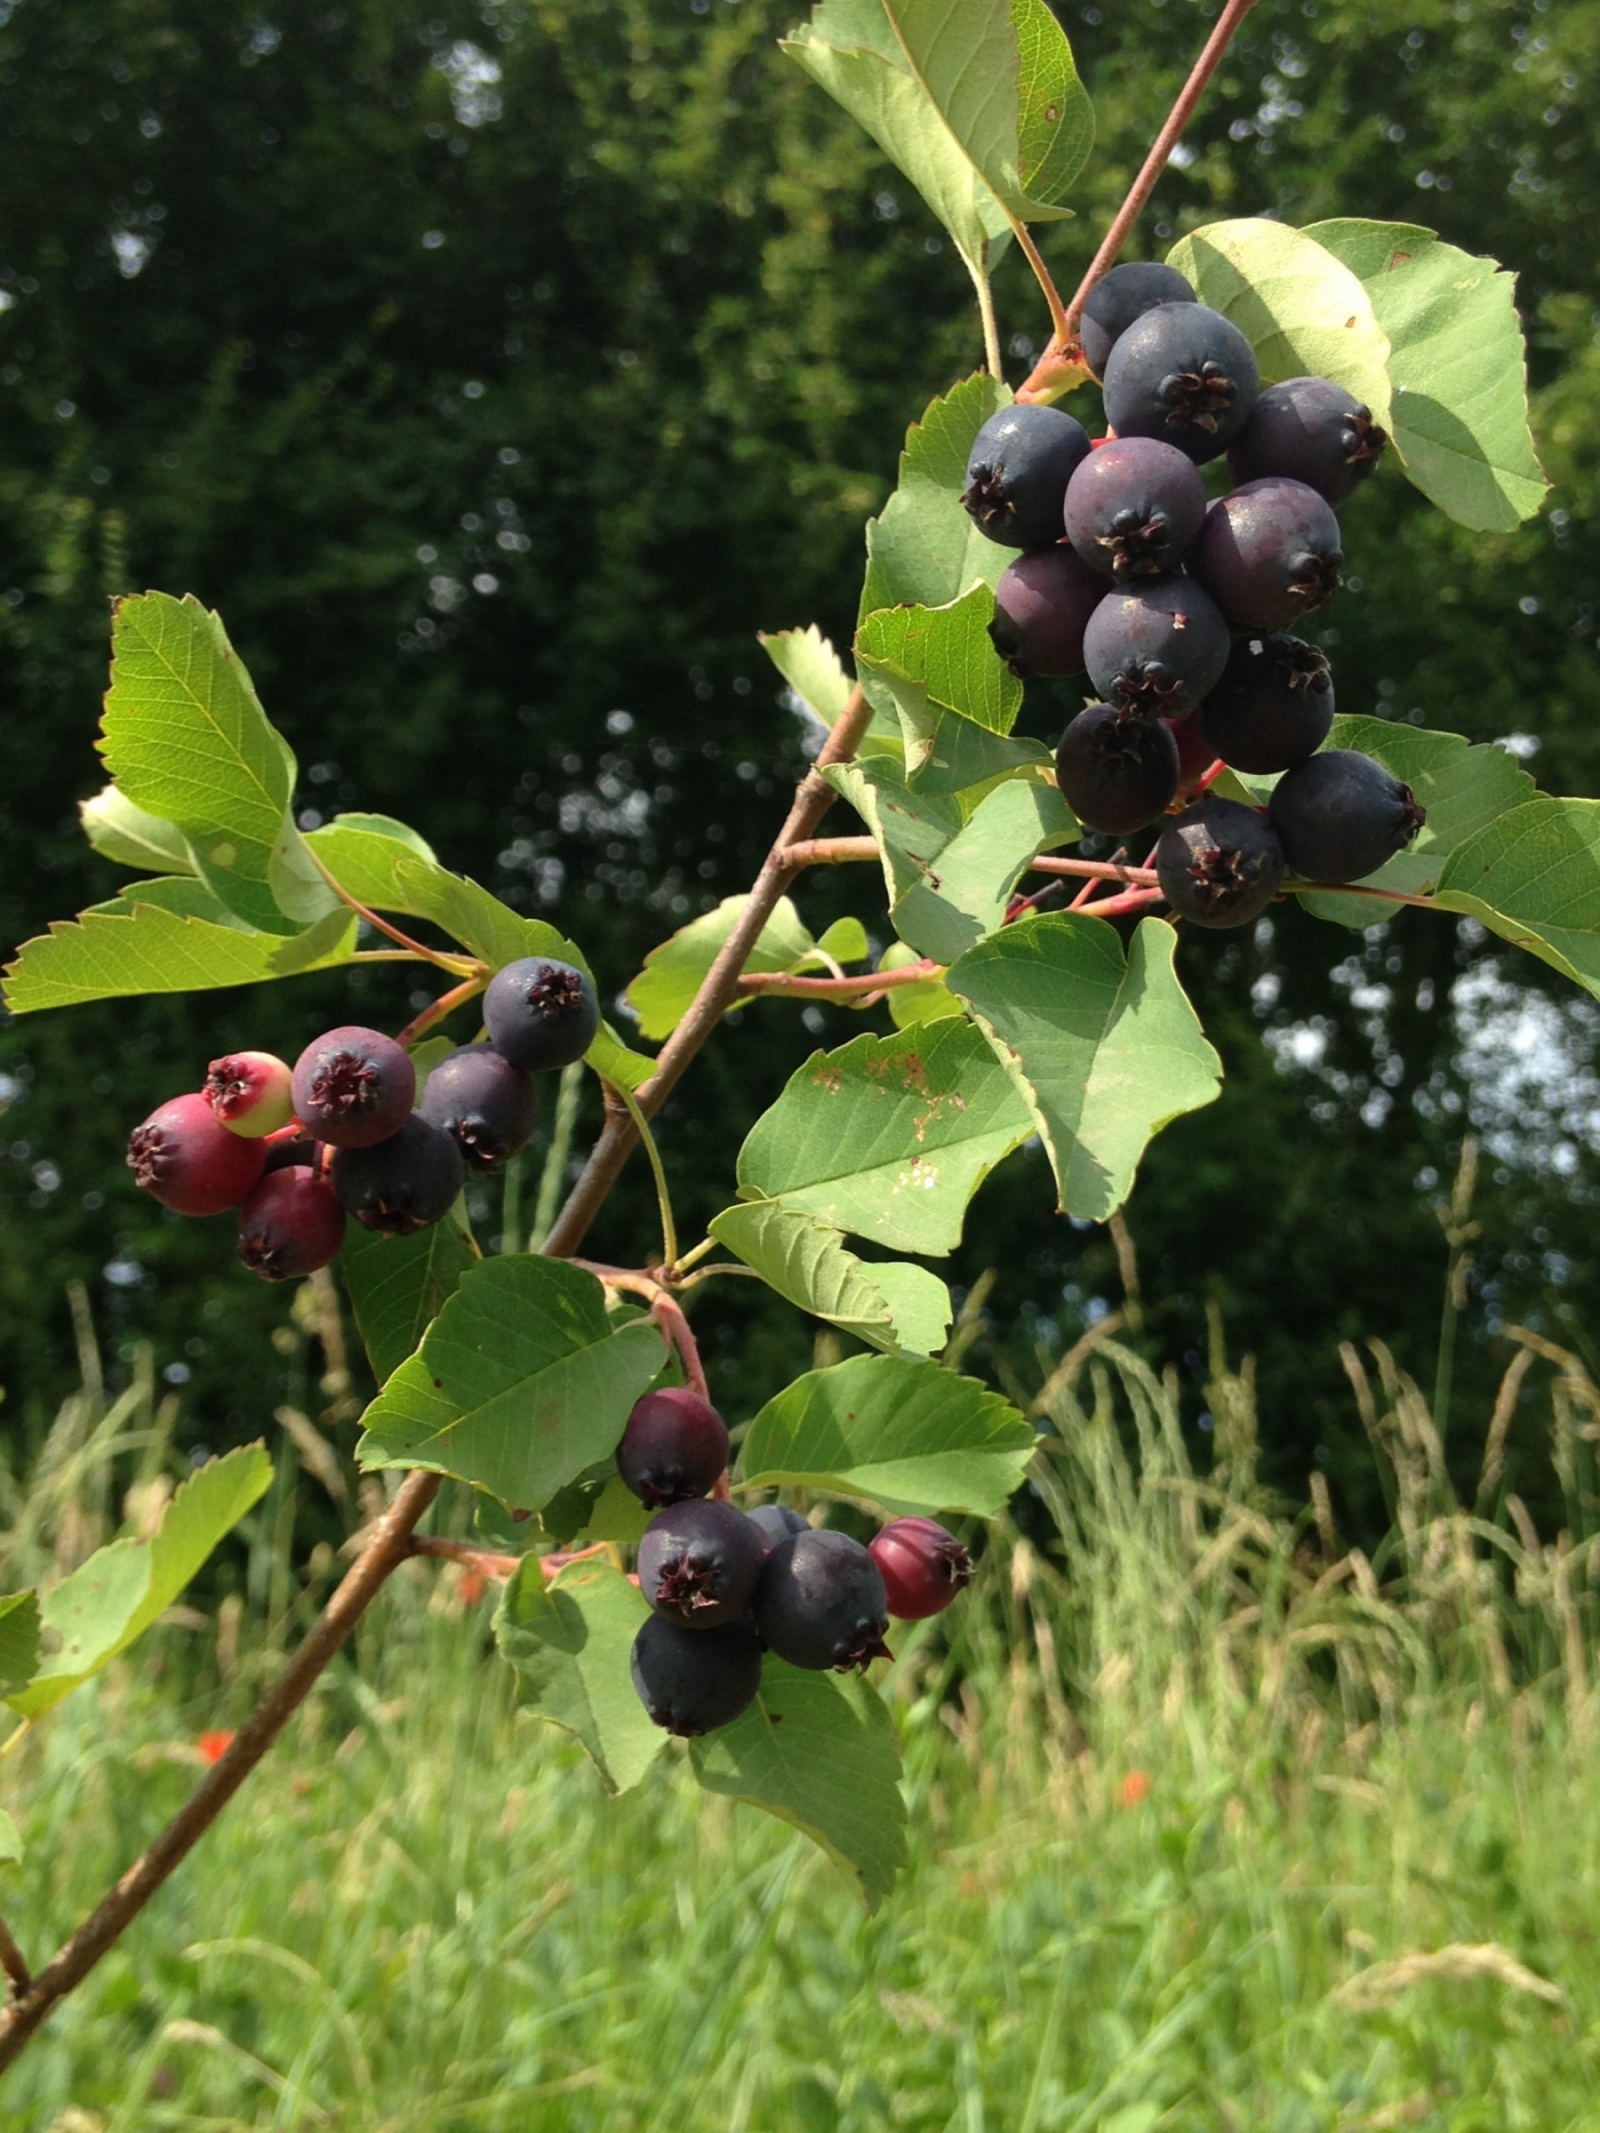 Amélanchier, june berry, saskattoon berry